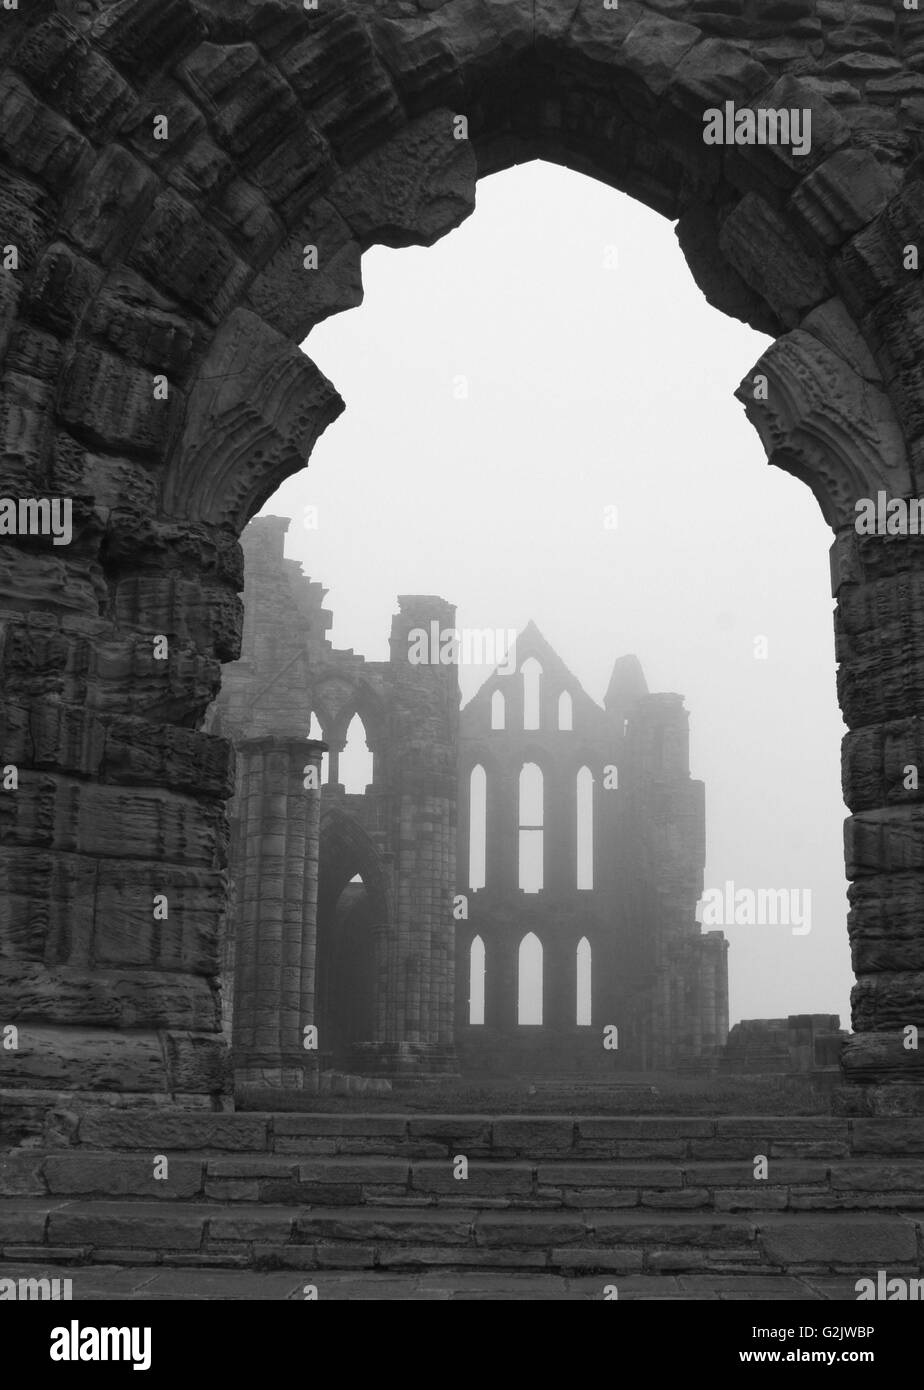 Whitby Abbey - Un estudio en blanco y negro Foto de stock